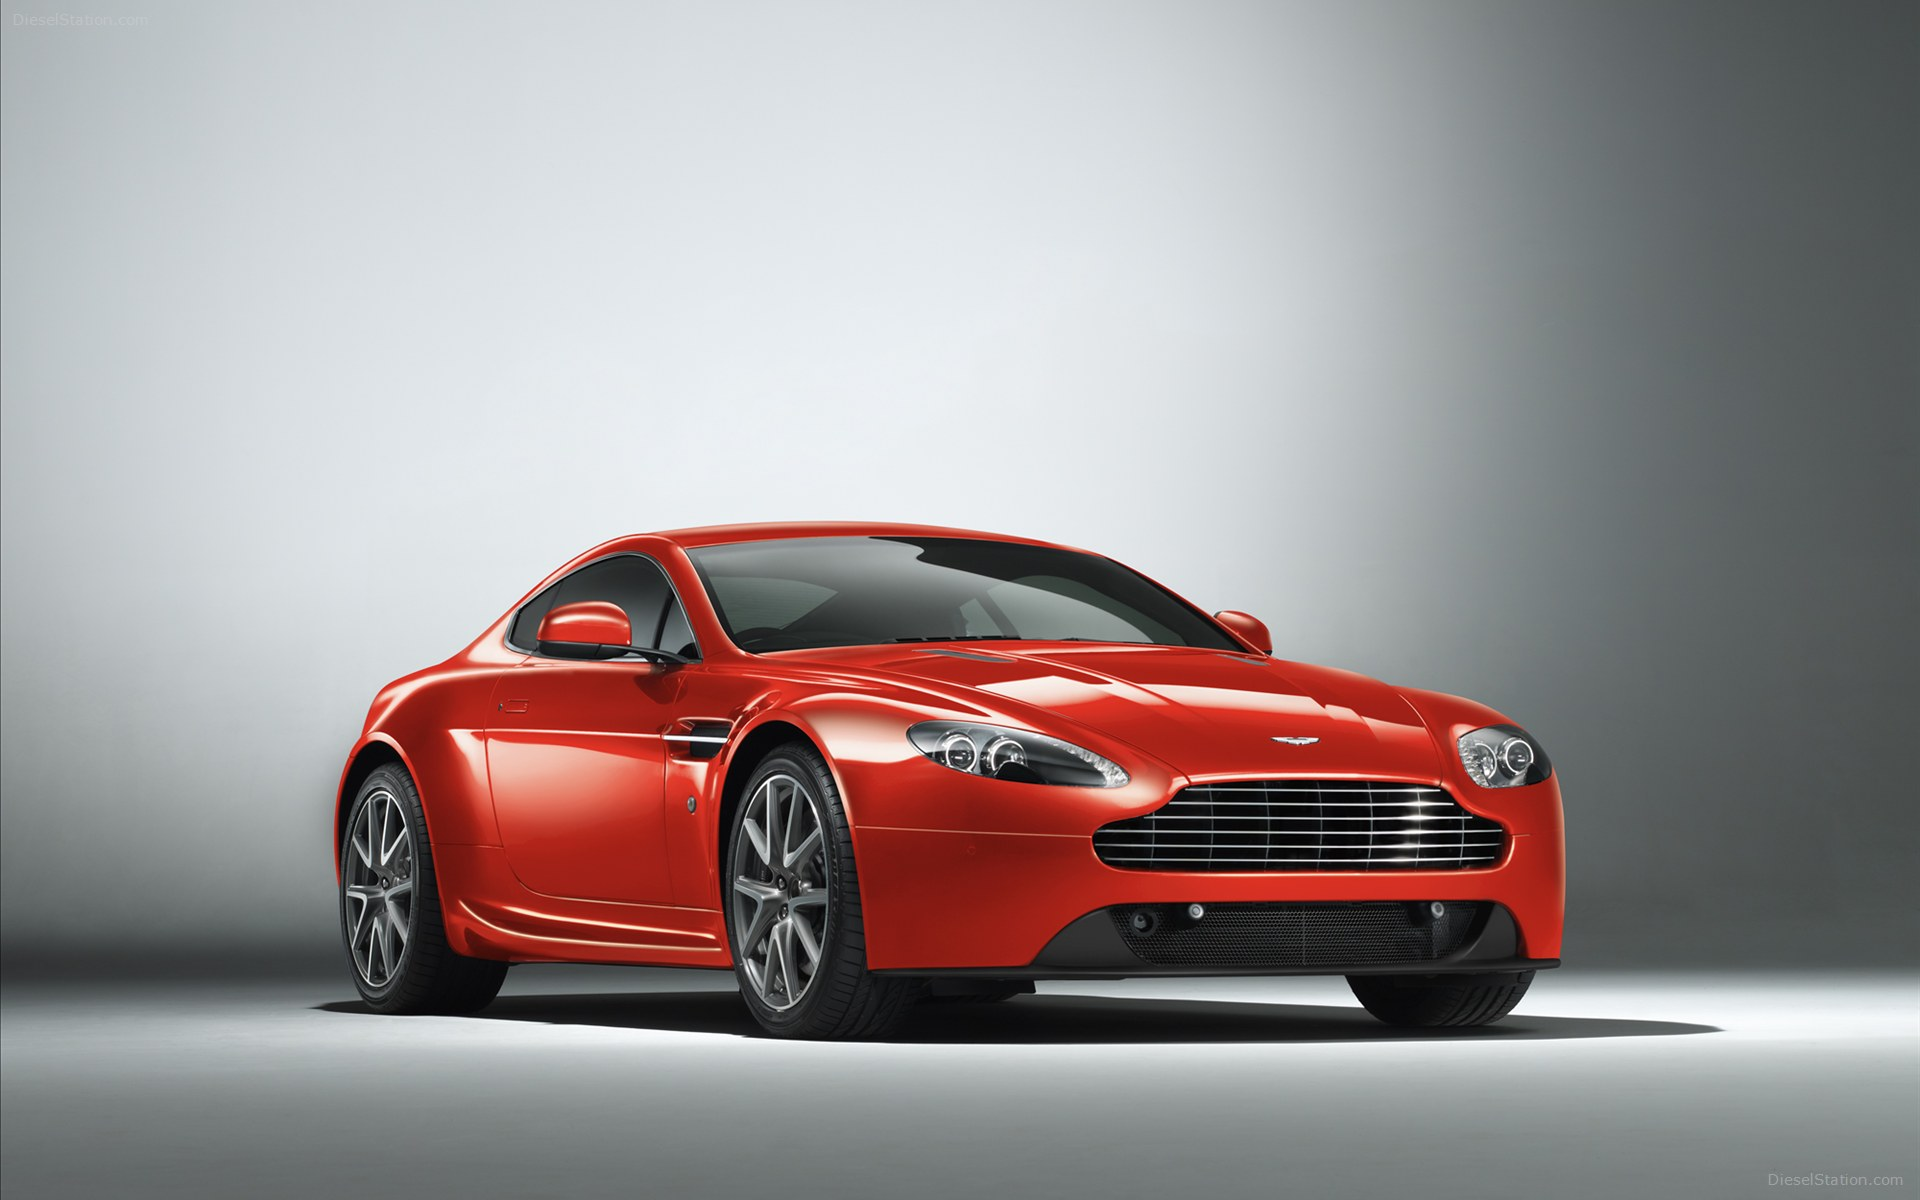 2013 Aston Martin V12 Zagato photo - 1